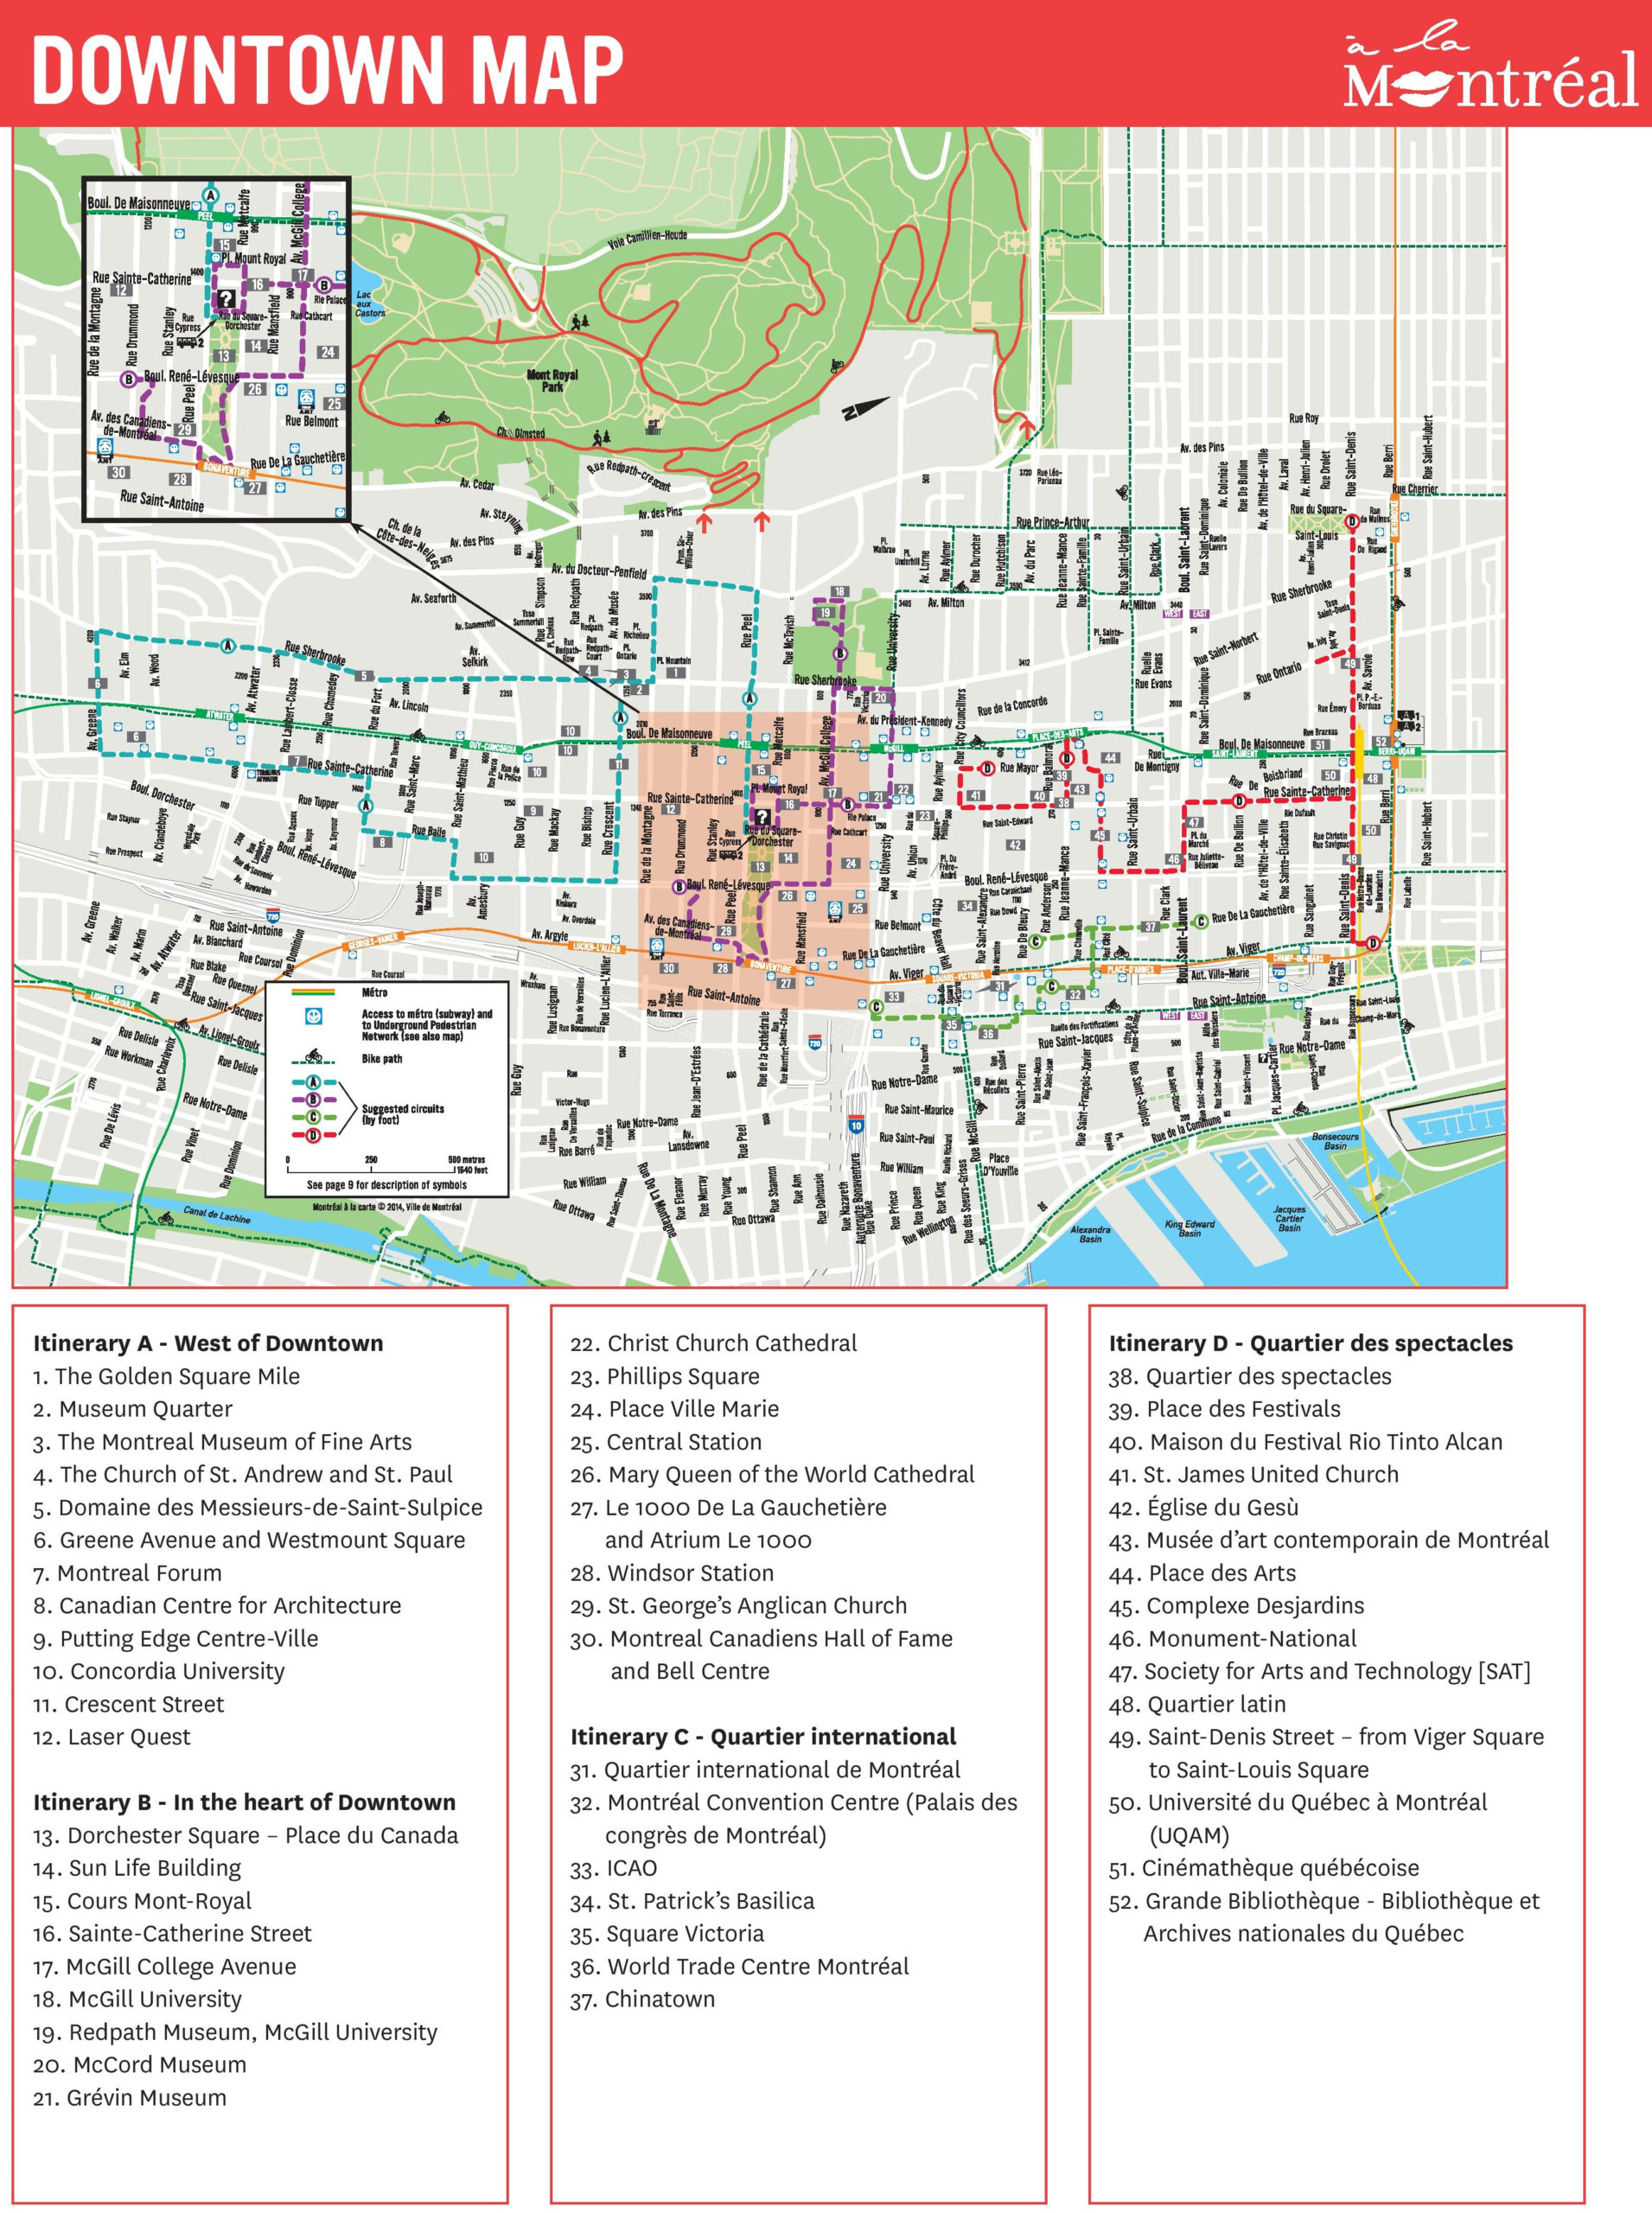 Montreal Downtown Map